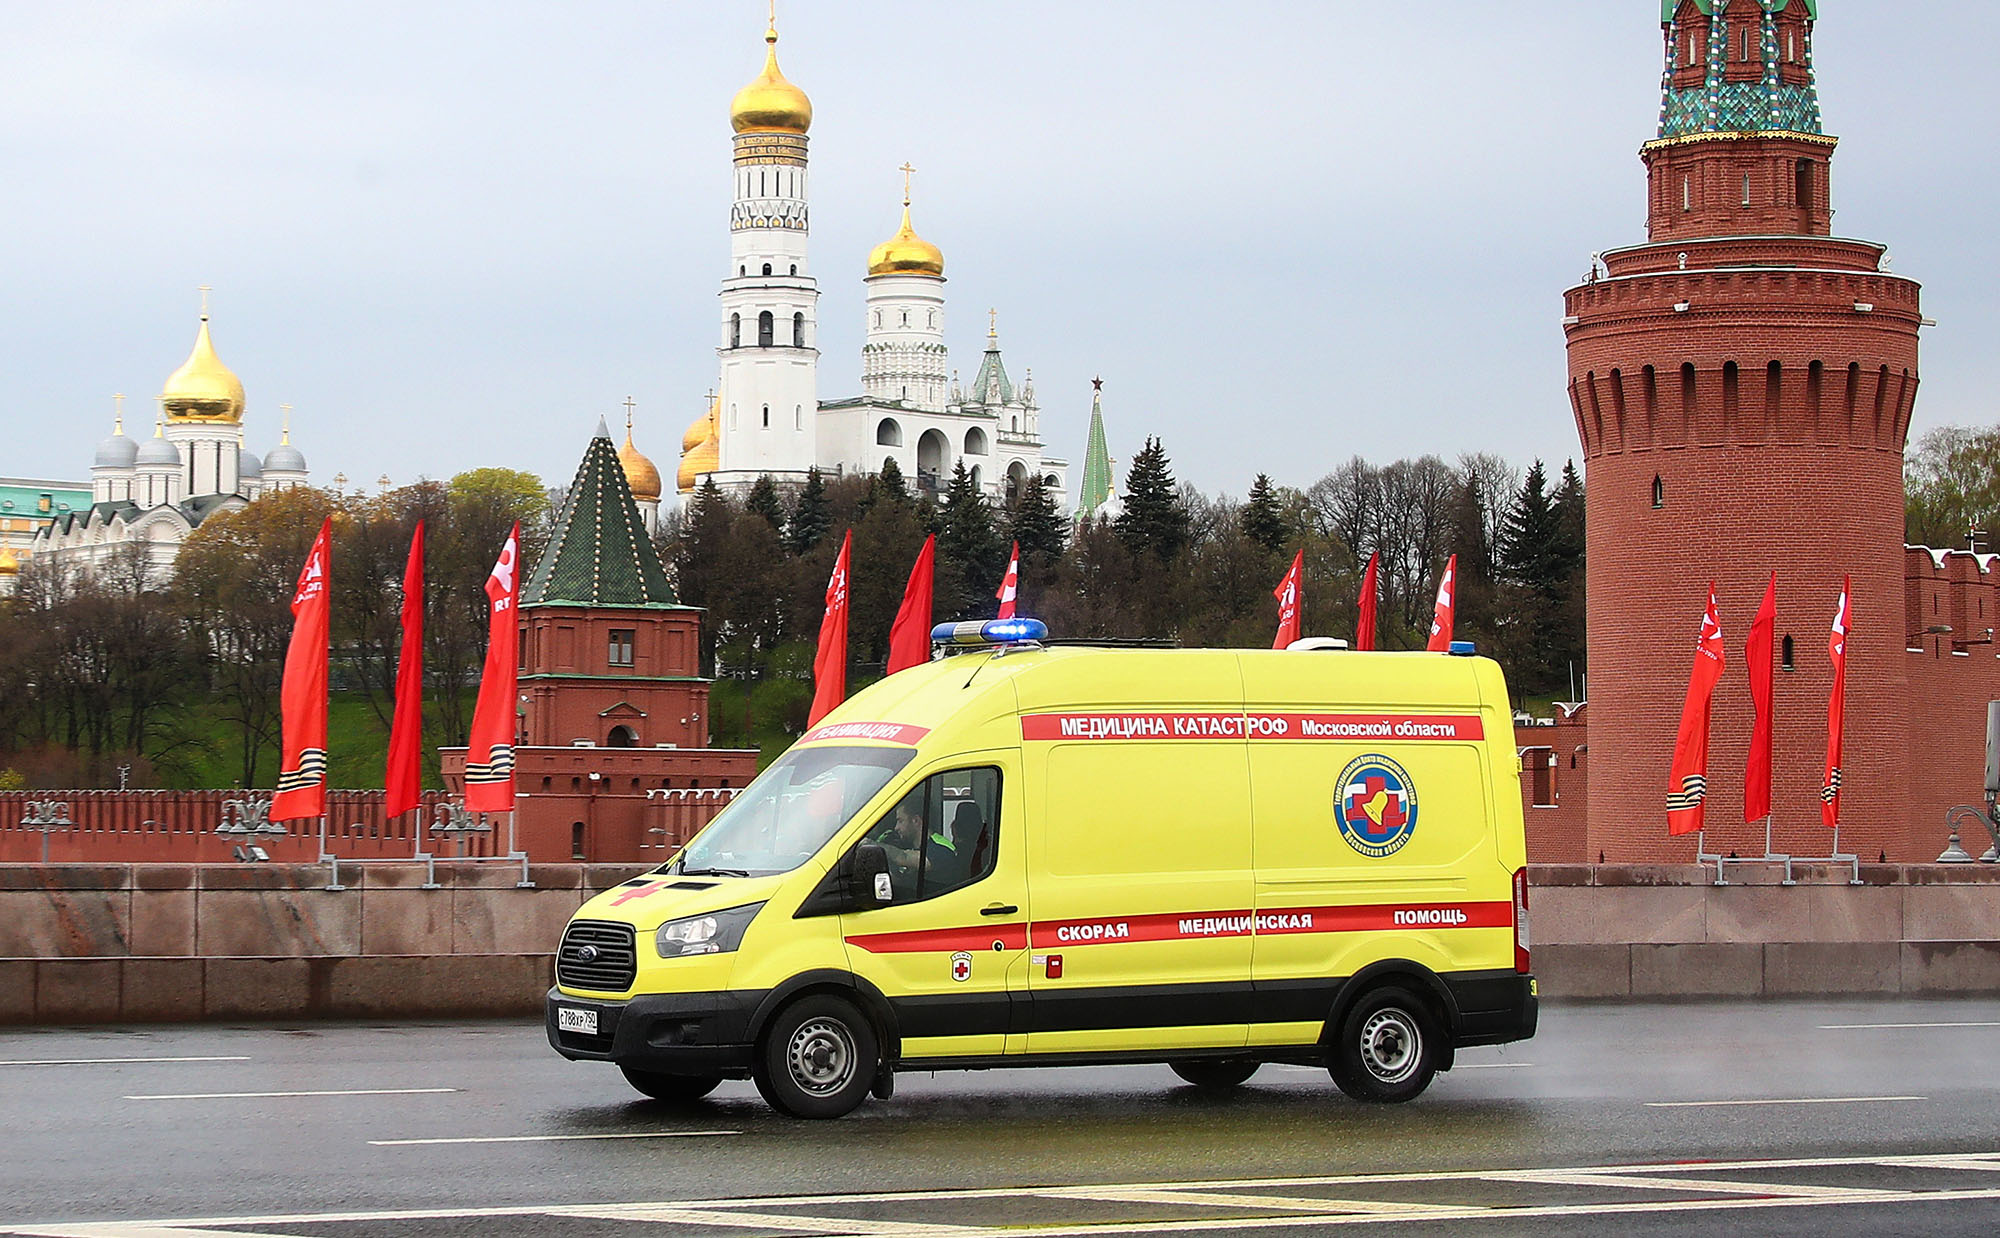 Three frontline healthcare workers have mysteriously fallen out of hospital windows in Russia over the past two weeks, heightening public attention to the working conditions for doctors and medical professionals amid the coronavirus pandemic. (Valery Sharifulin/TASS/Getty Images)